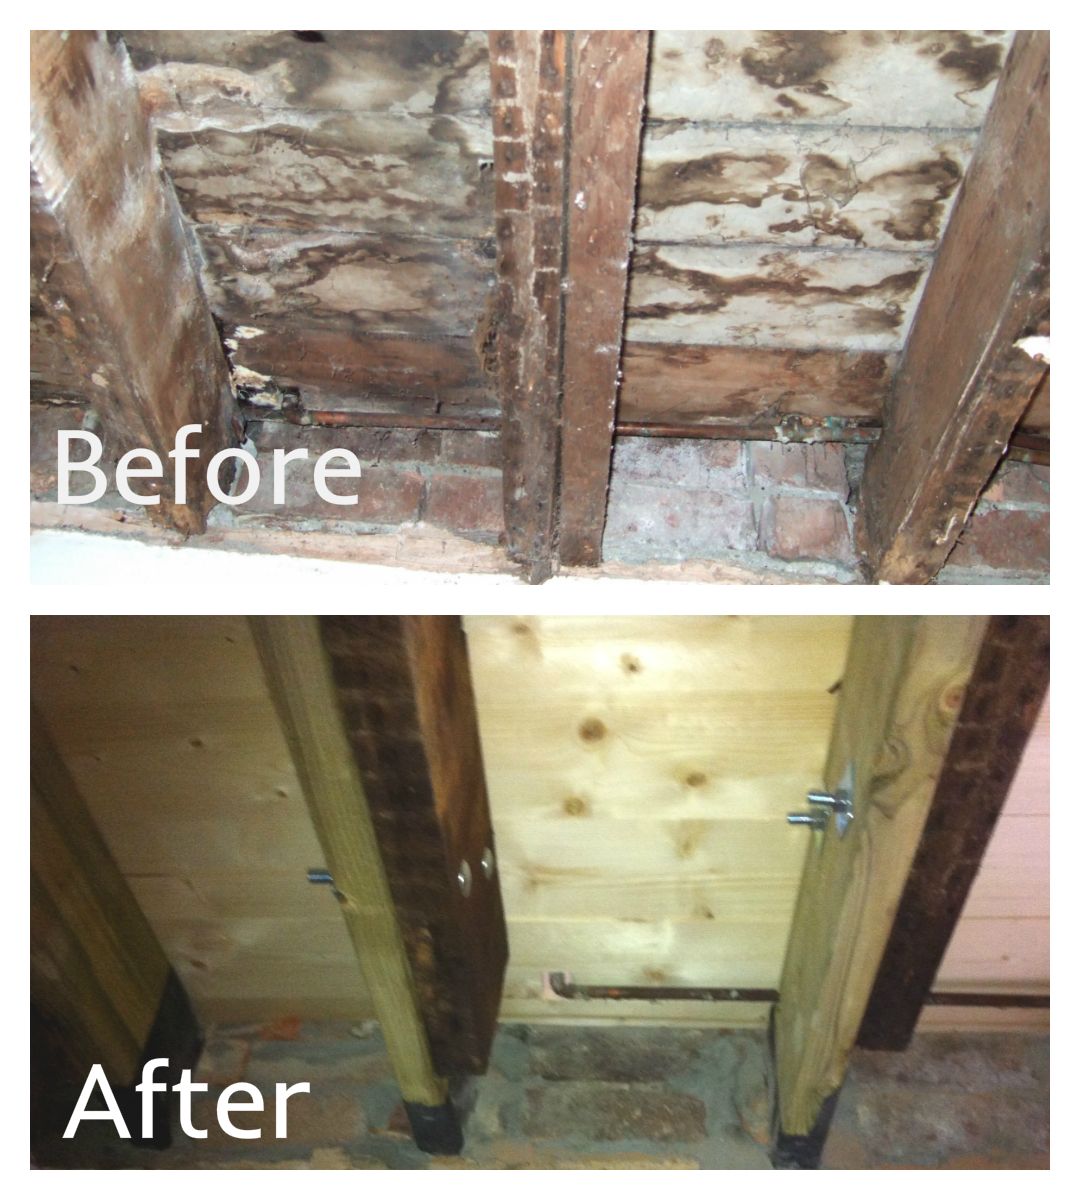 Enjoyable Claiming For Joist Repairs Or Water Damage After A Leak Ic Home Interior And Landscaping Palasignezvosmurscom